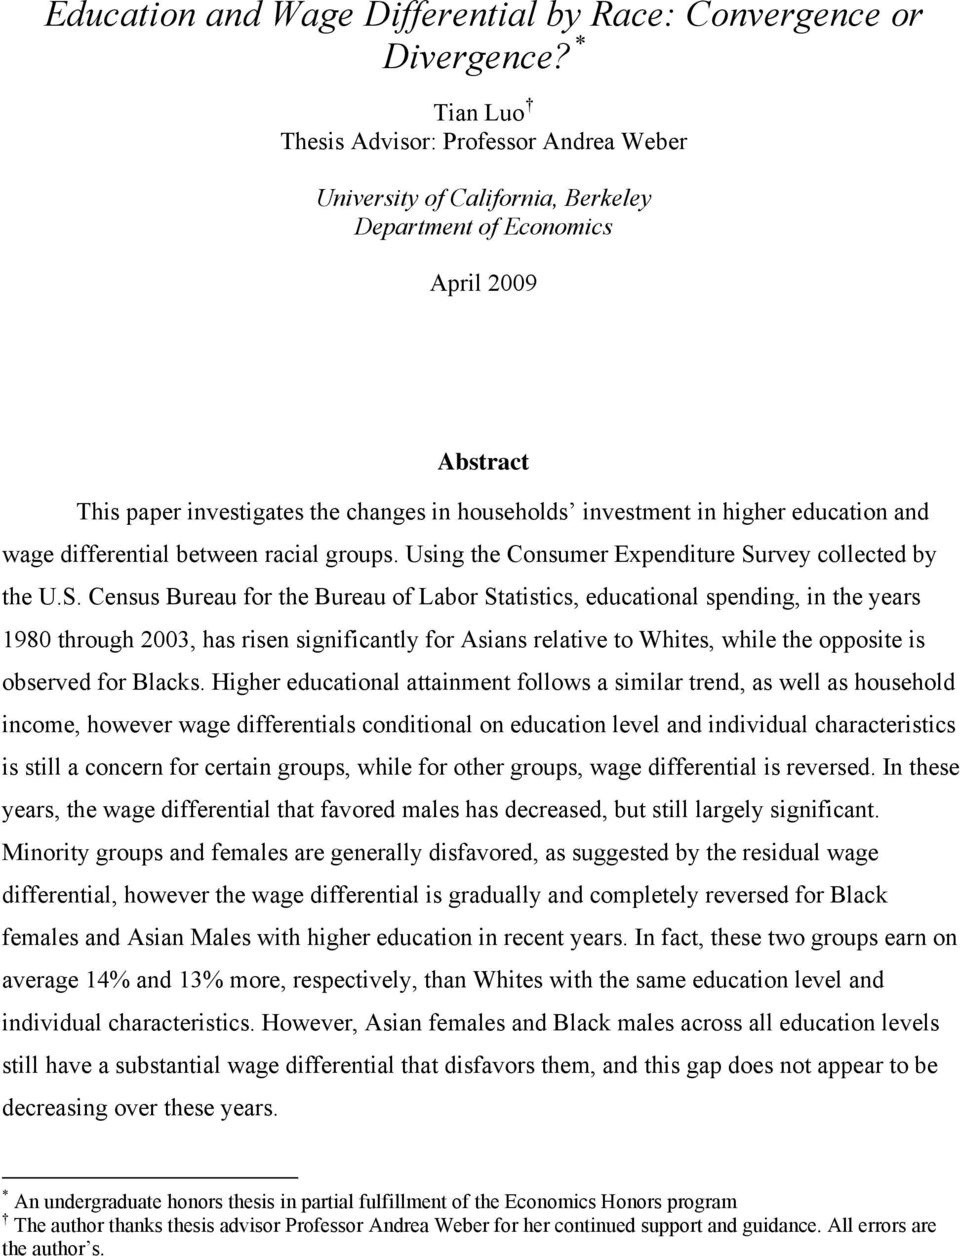 education and wage differential between racial groups. Using the Consumer Expenditure Su